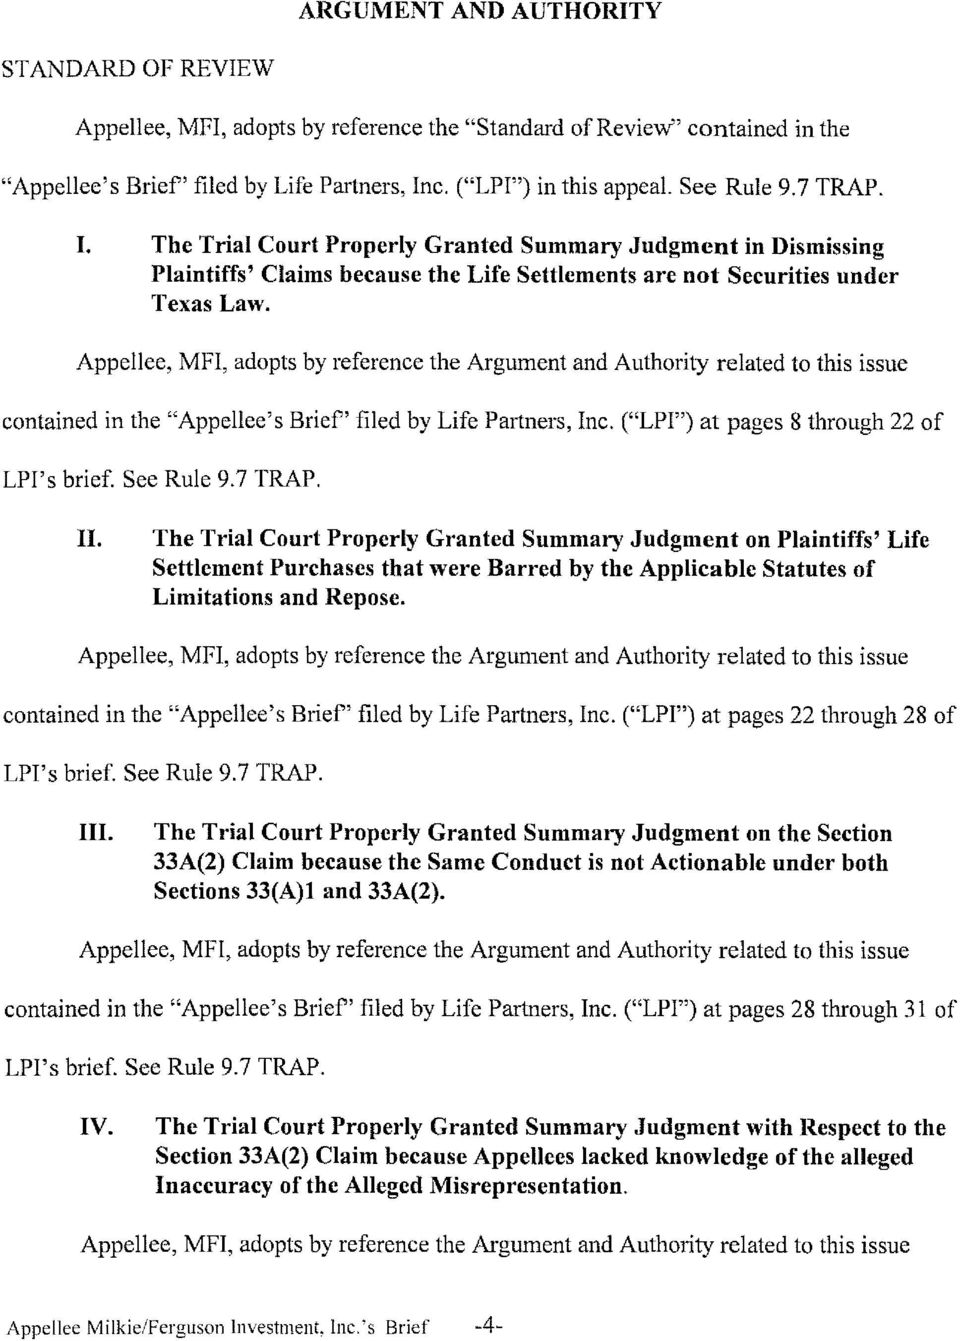 "Appellee, MFI, adopts by reference the Argument and Authority related to this issue contained in the ""Appellee's Brief' filed by Life Partners, Inc. (""LPI"") at pages 8 through 22 of LPI's brief."